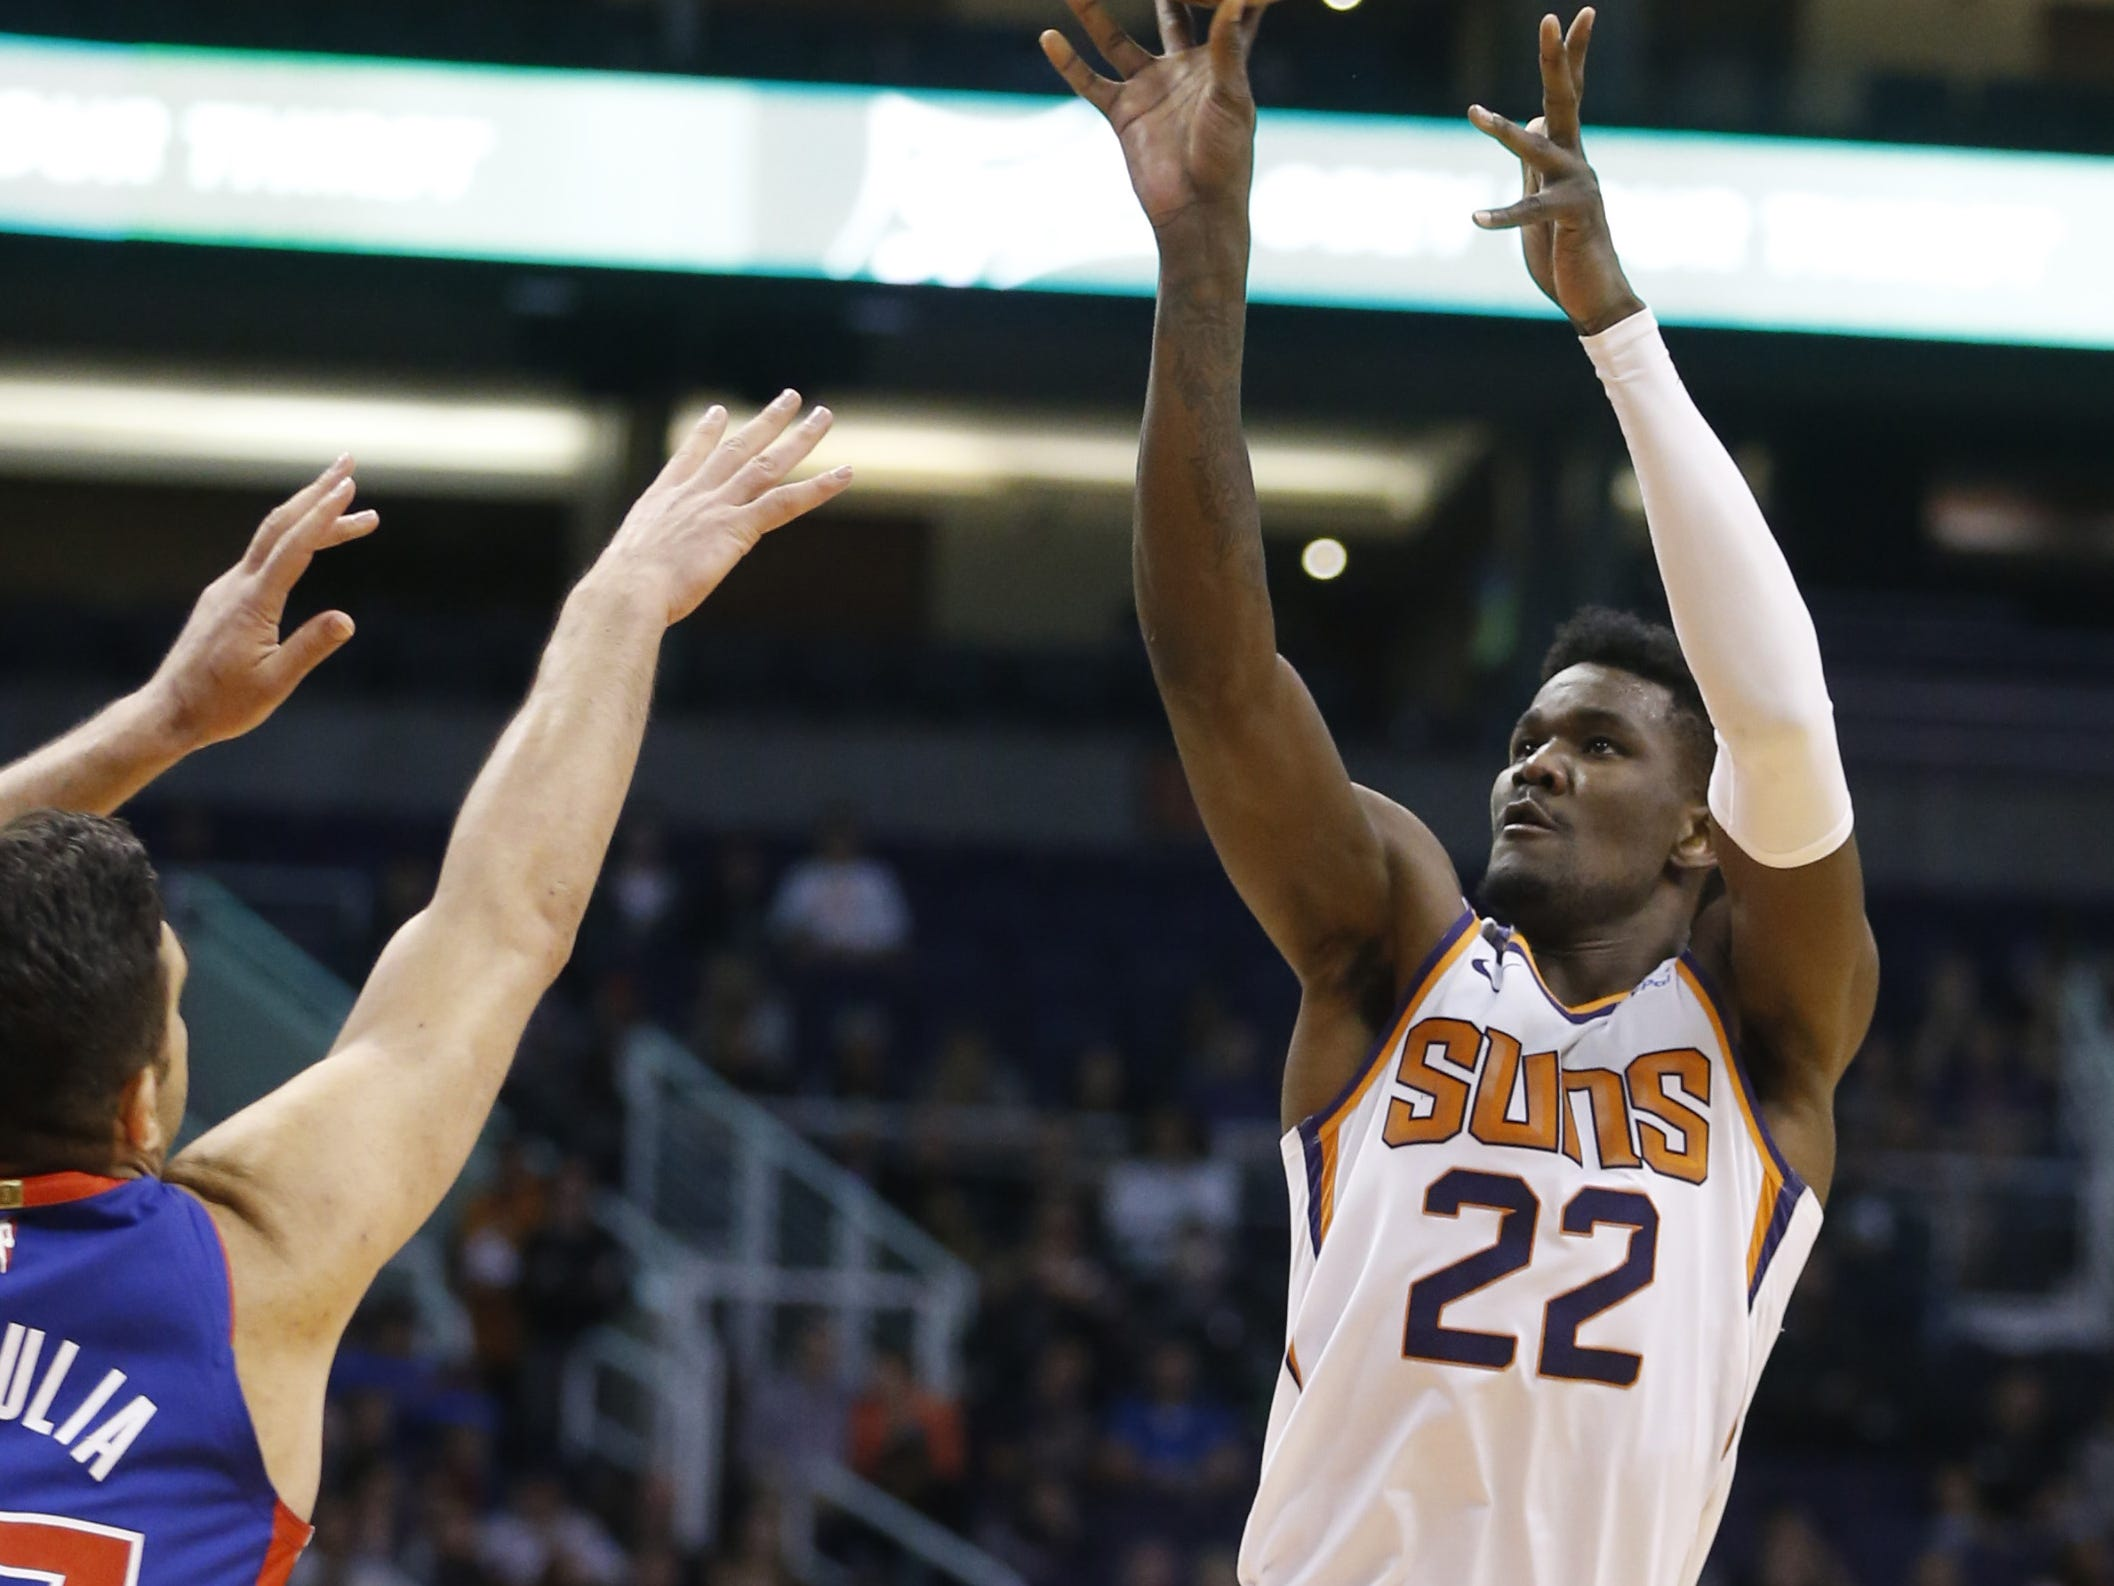 Suns' Deandre Ayton (22) shoots against Pistons' Zaza Pachulia during the first half at the Talking Stick Resort Arena in Phoenix, Ariz. on March 21, 2019.